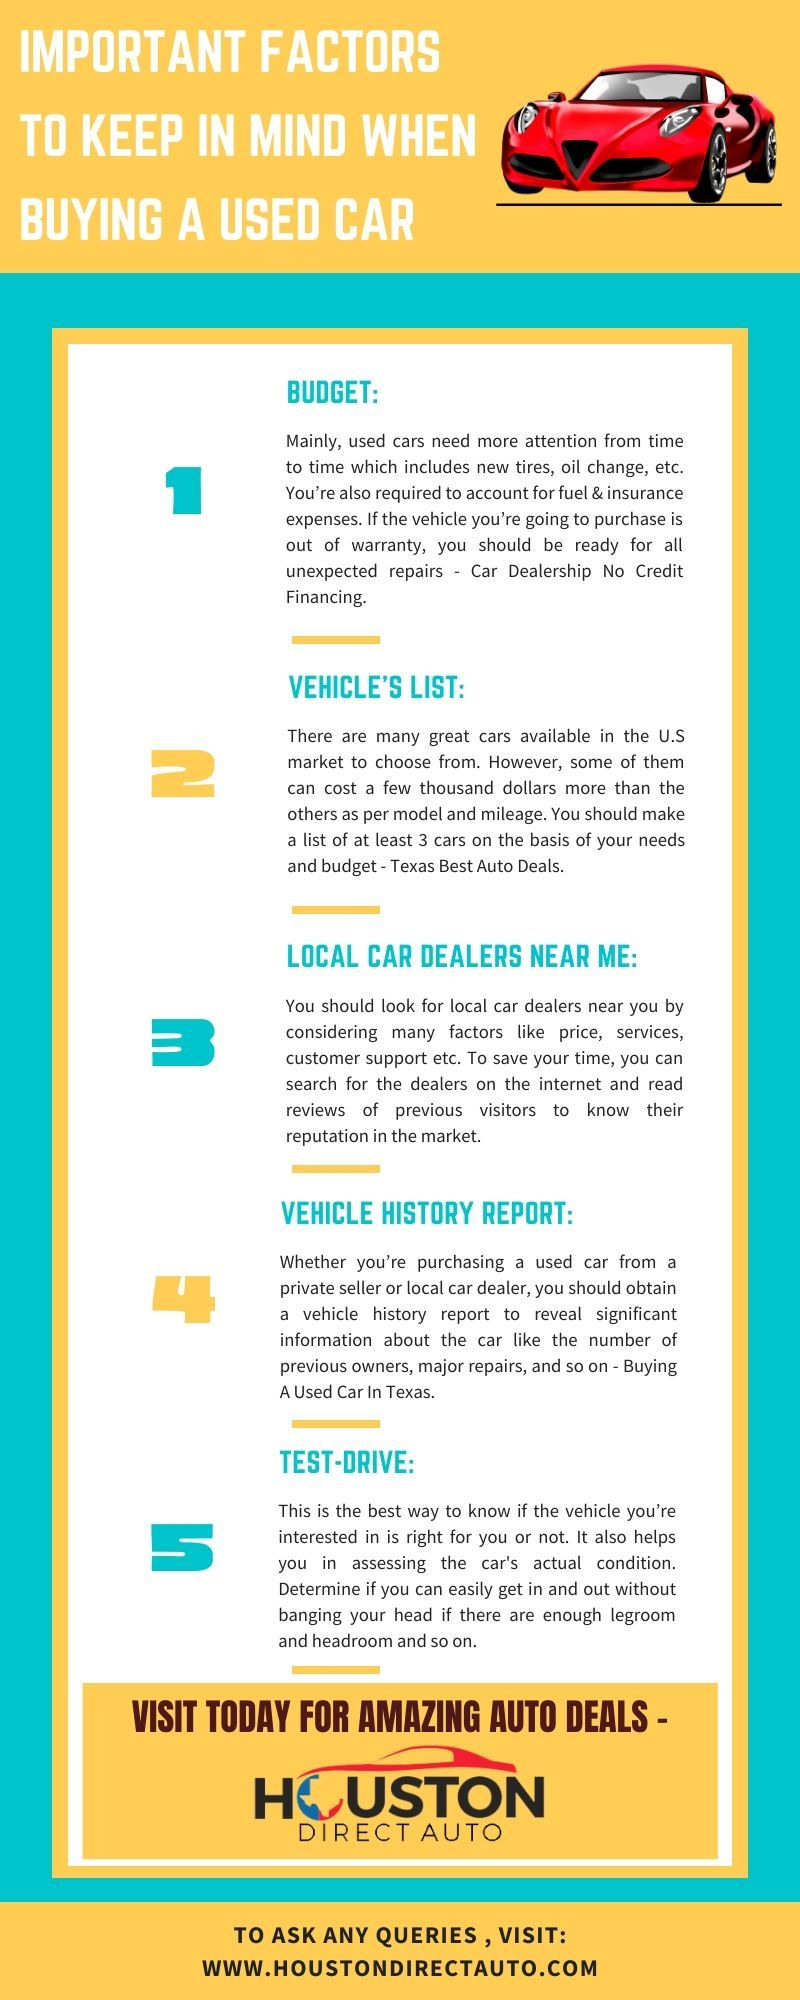 Important Factors To Keep In Mind When Buying A Used Car